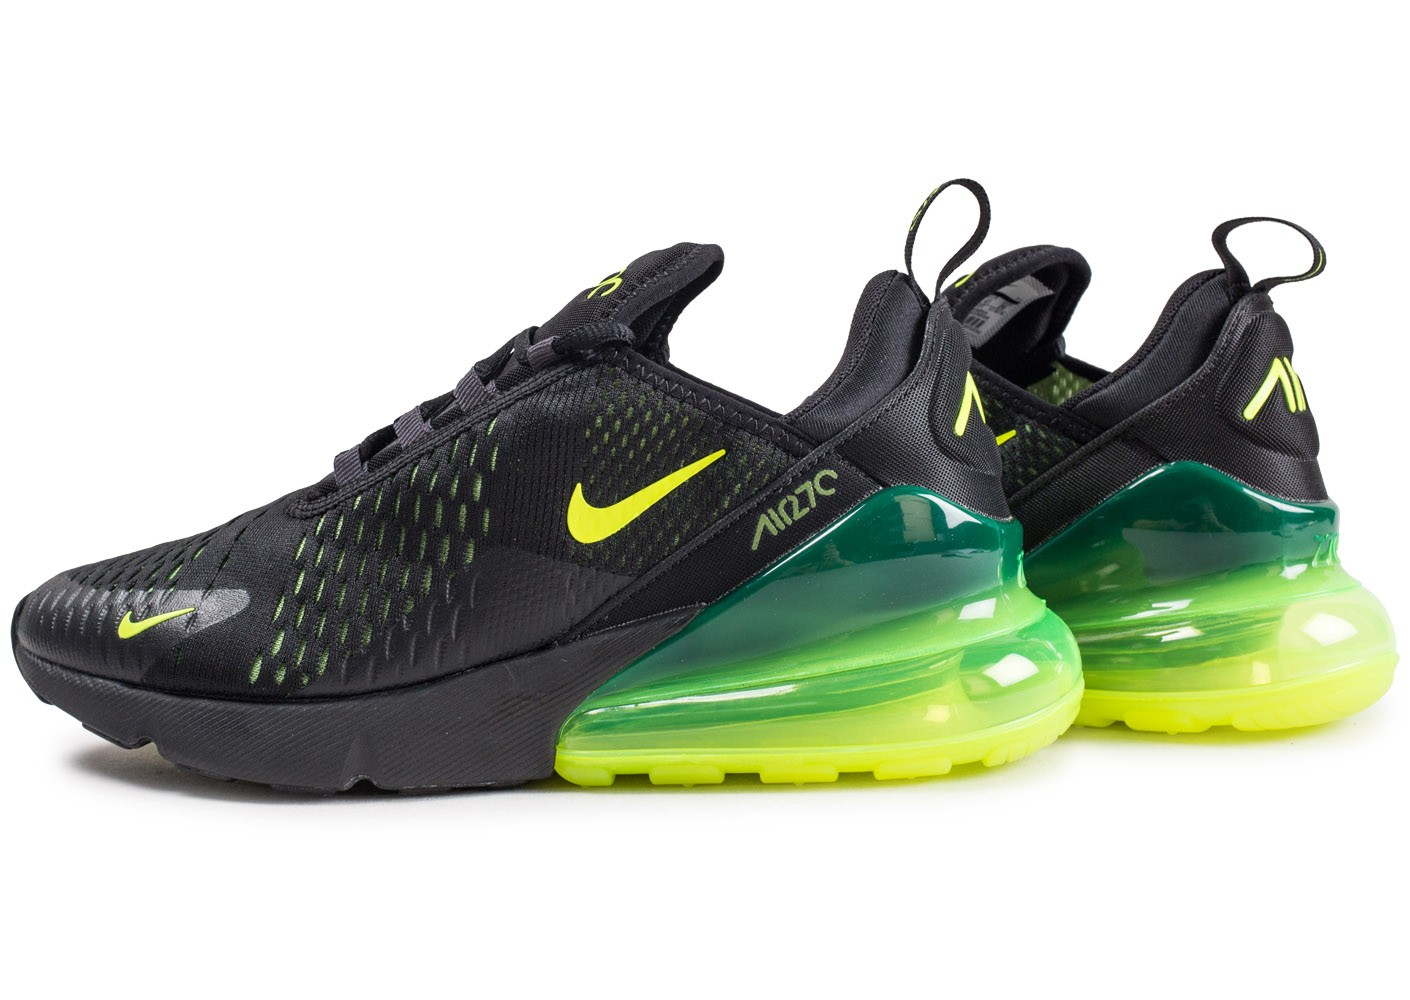 best service 505f3 31b16 Max Max Homme Chausport Chaussures Volt Nike Baskets Noire Air 270 270 270  6nqx51wSp